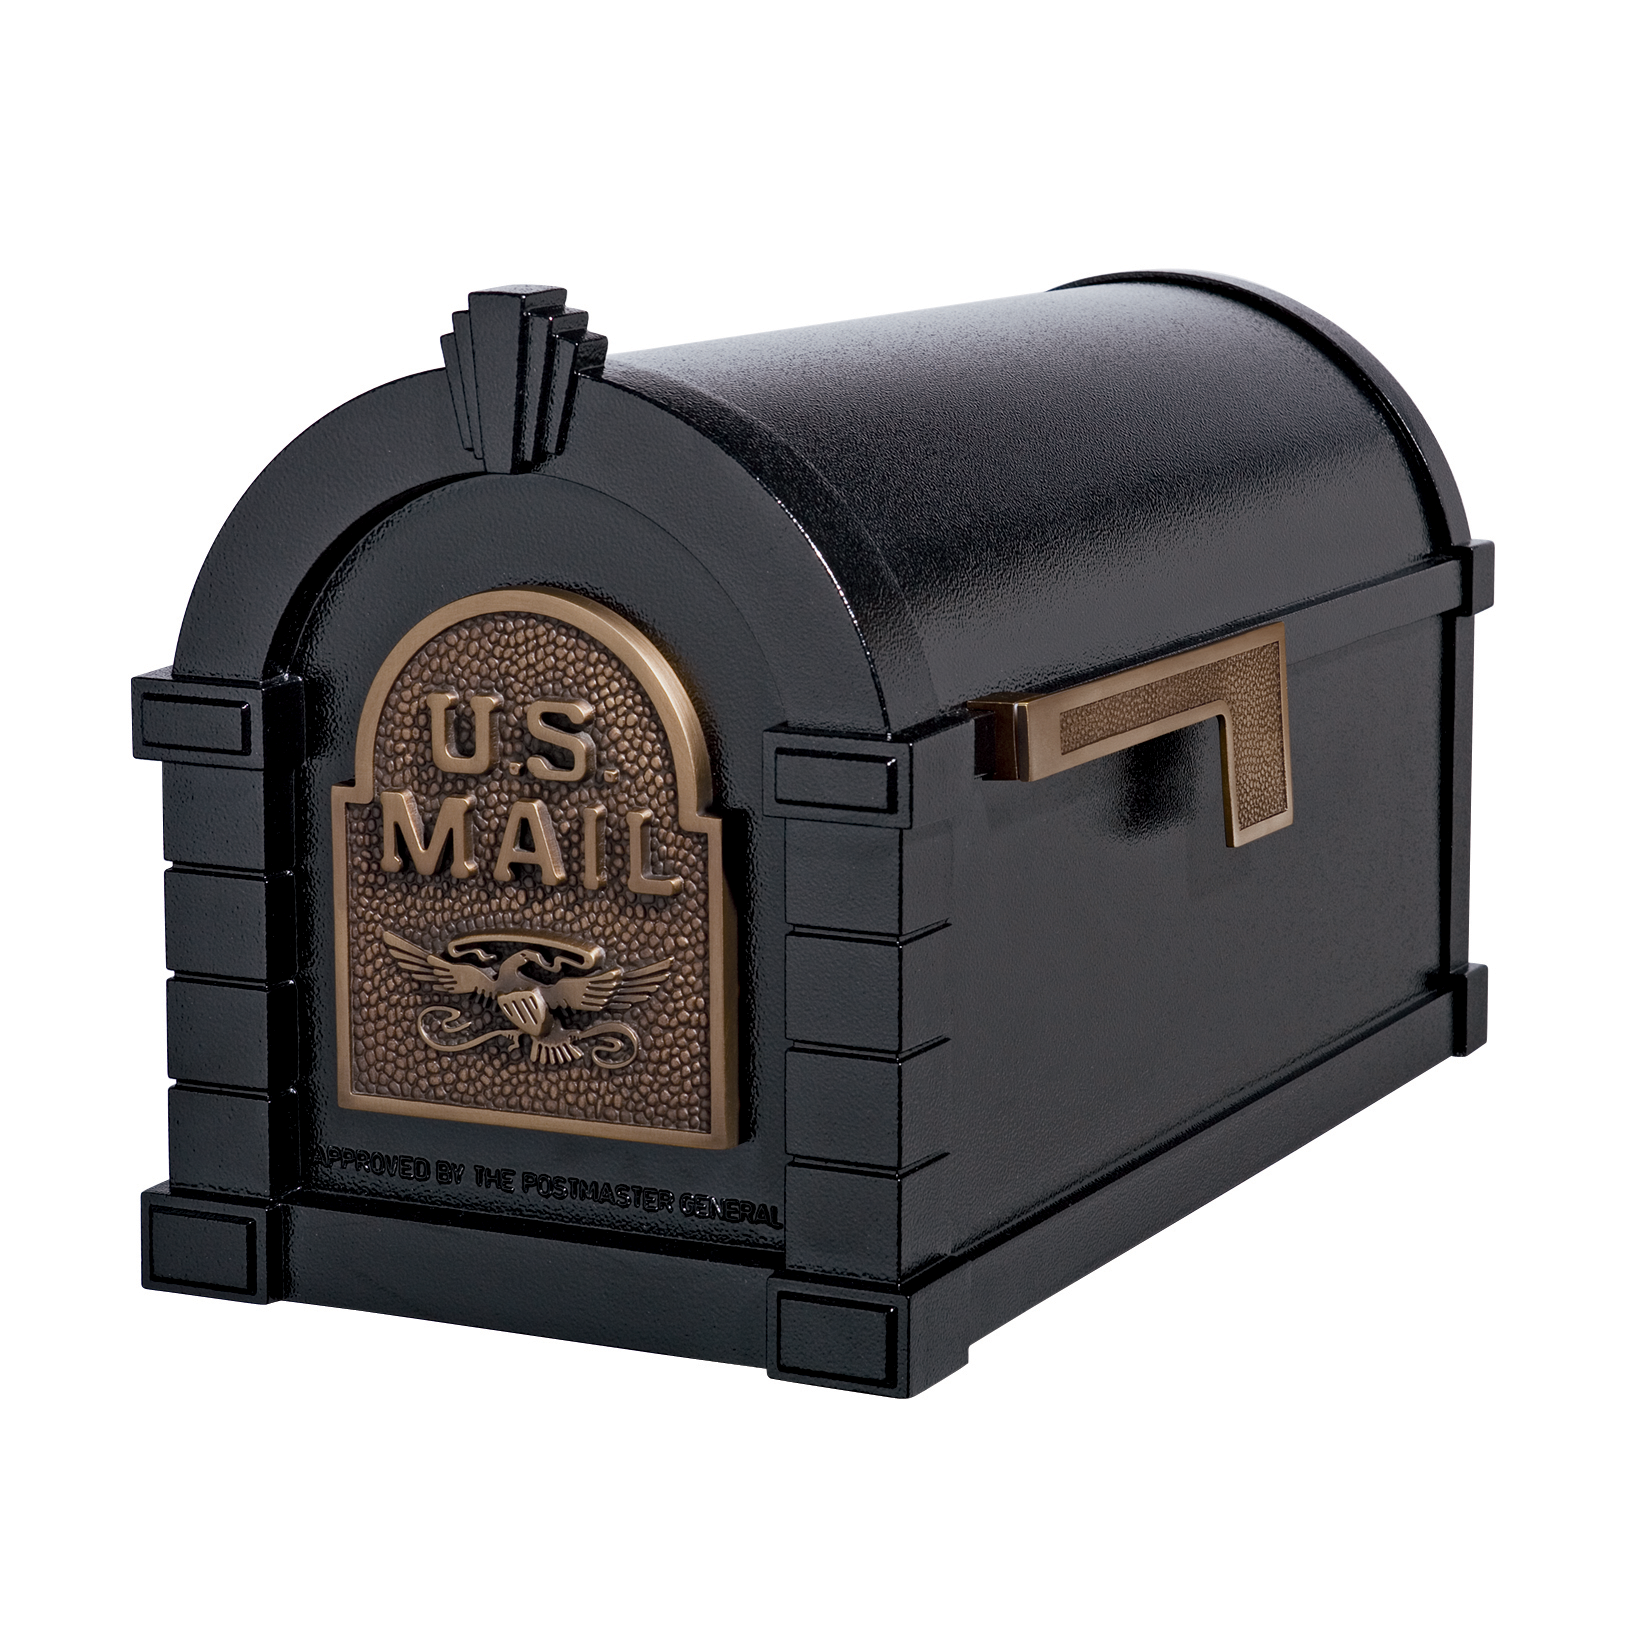 Gaines Eagle Keystone MailboxesBlack with Antique Bronze